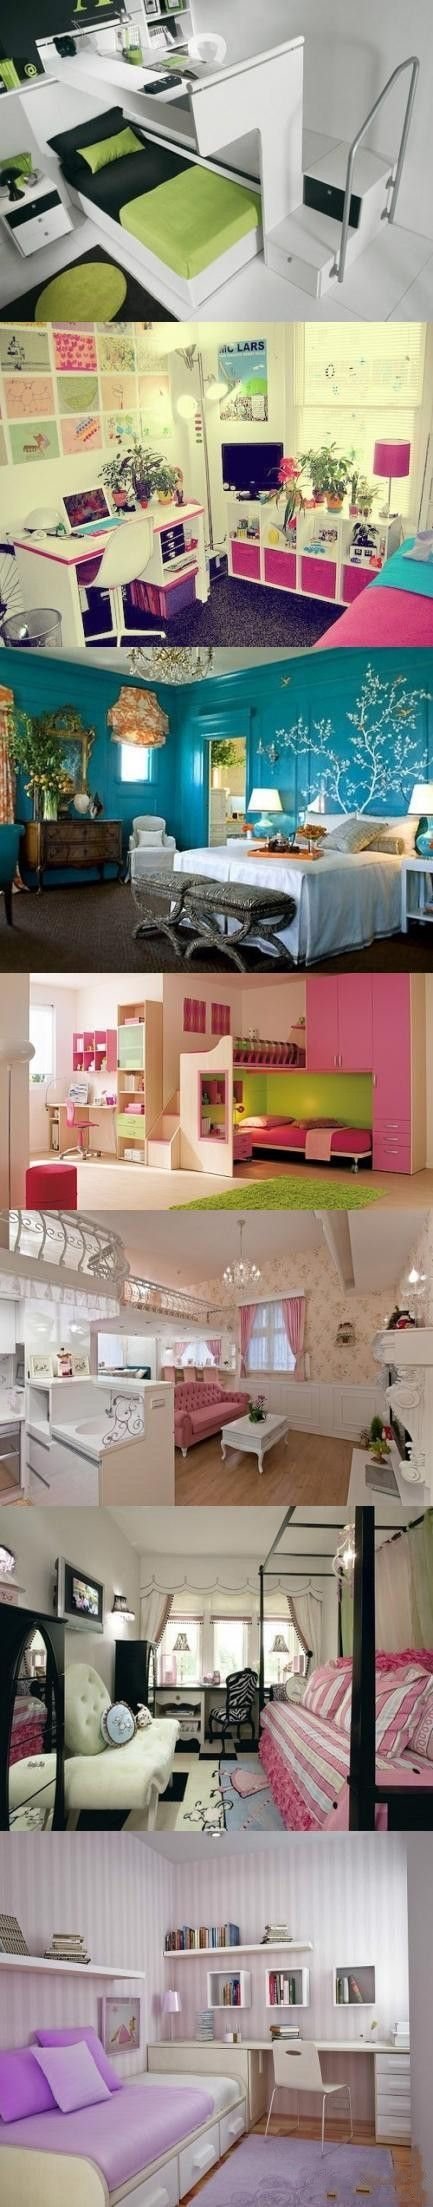 cute room ideas for teens and young girls